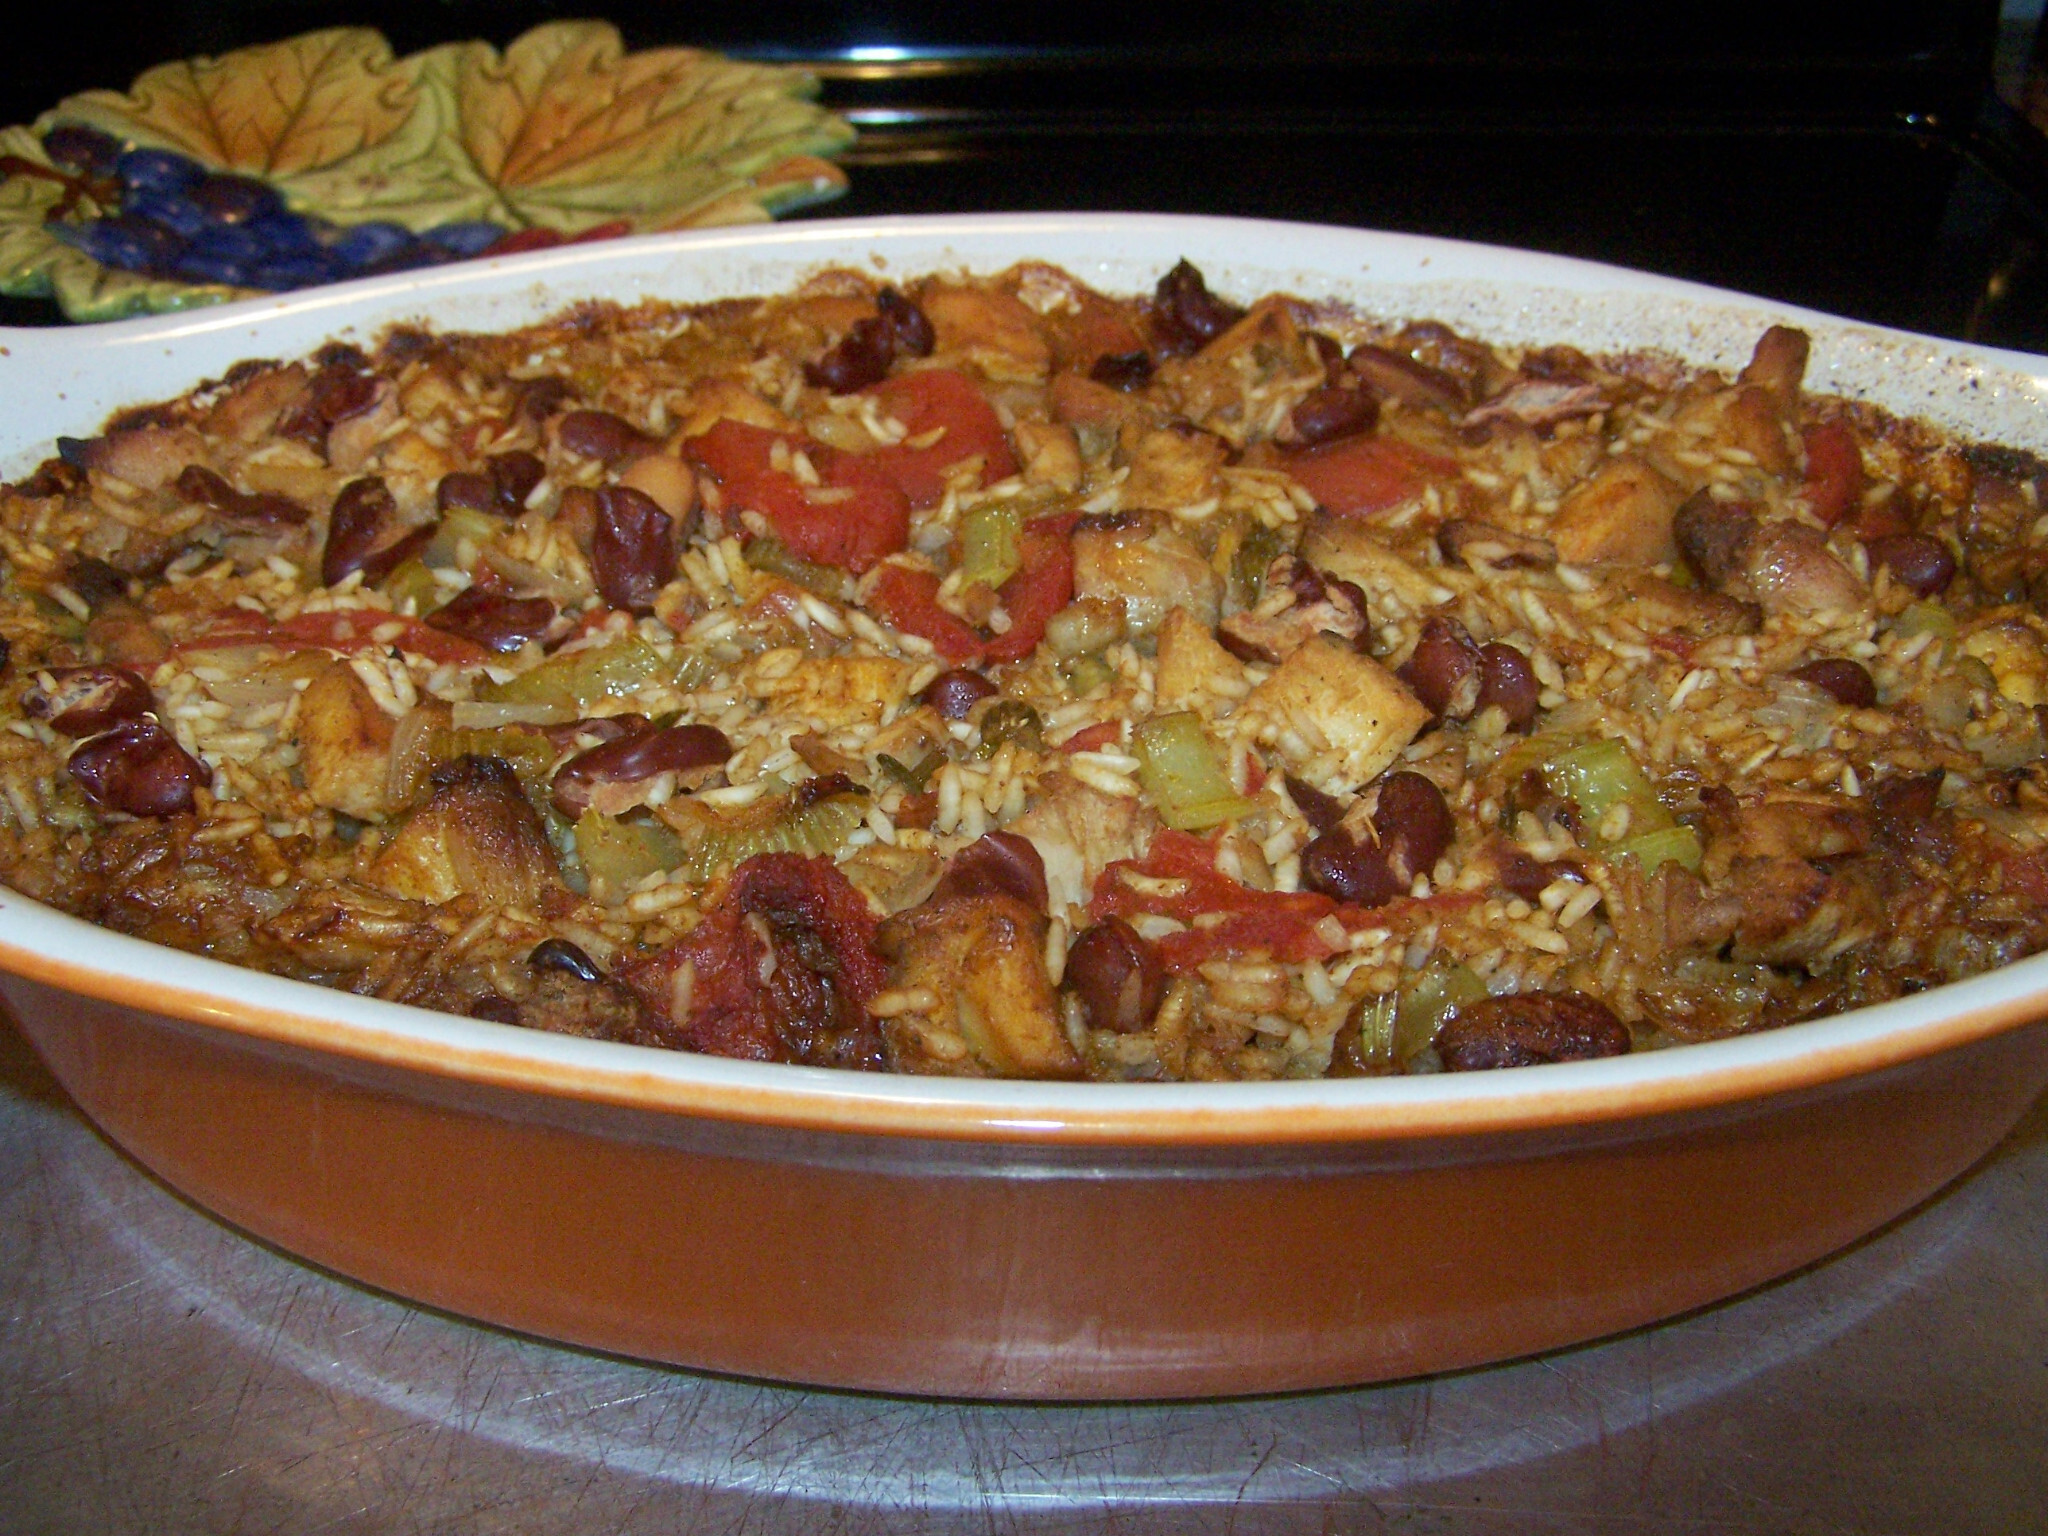 Gluten Free Cajun Chicken Dirty Red Beans and Rice